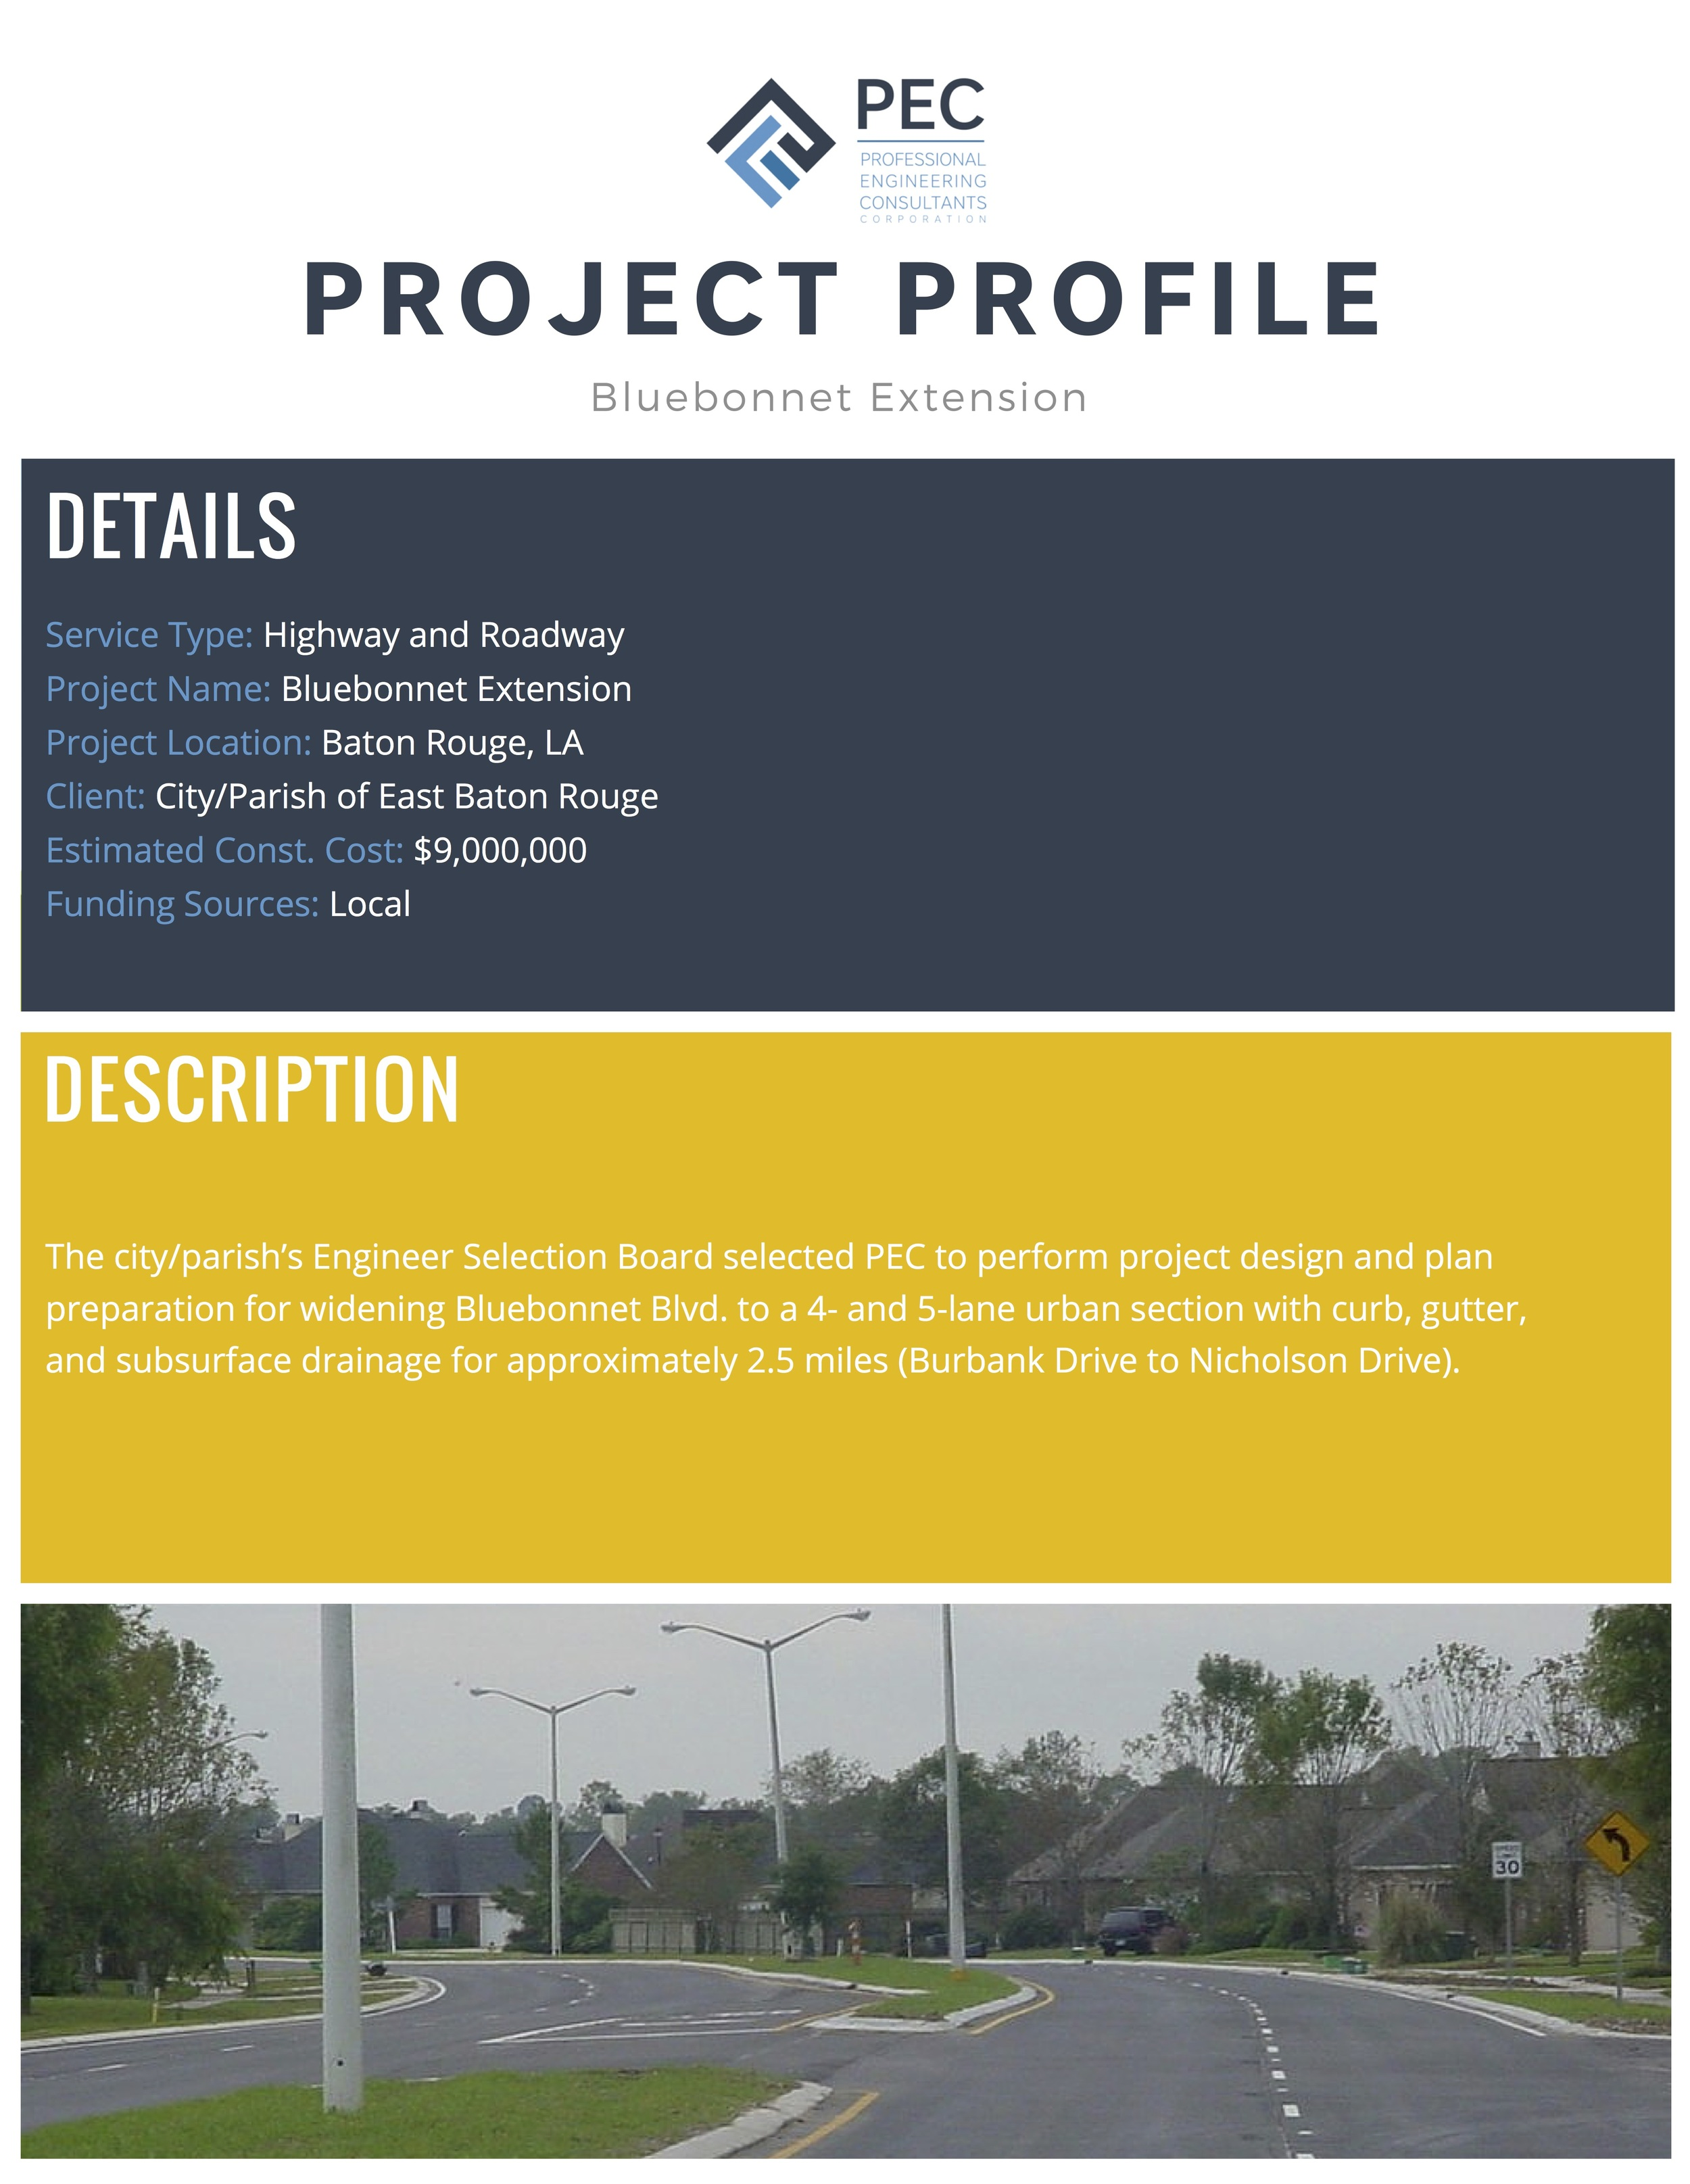 Project Profile_Bluebonnet ExtensionFINAL.jpg